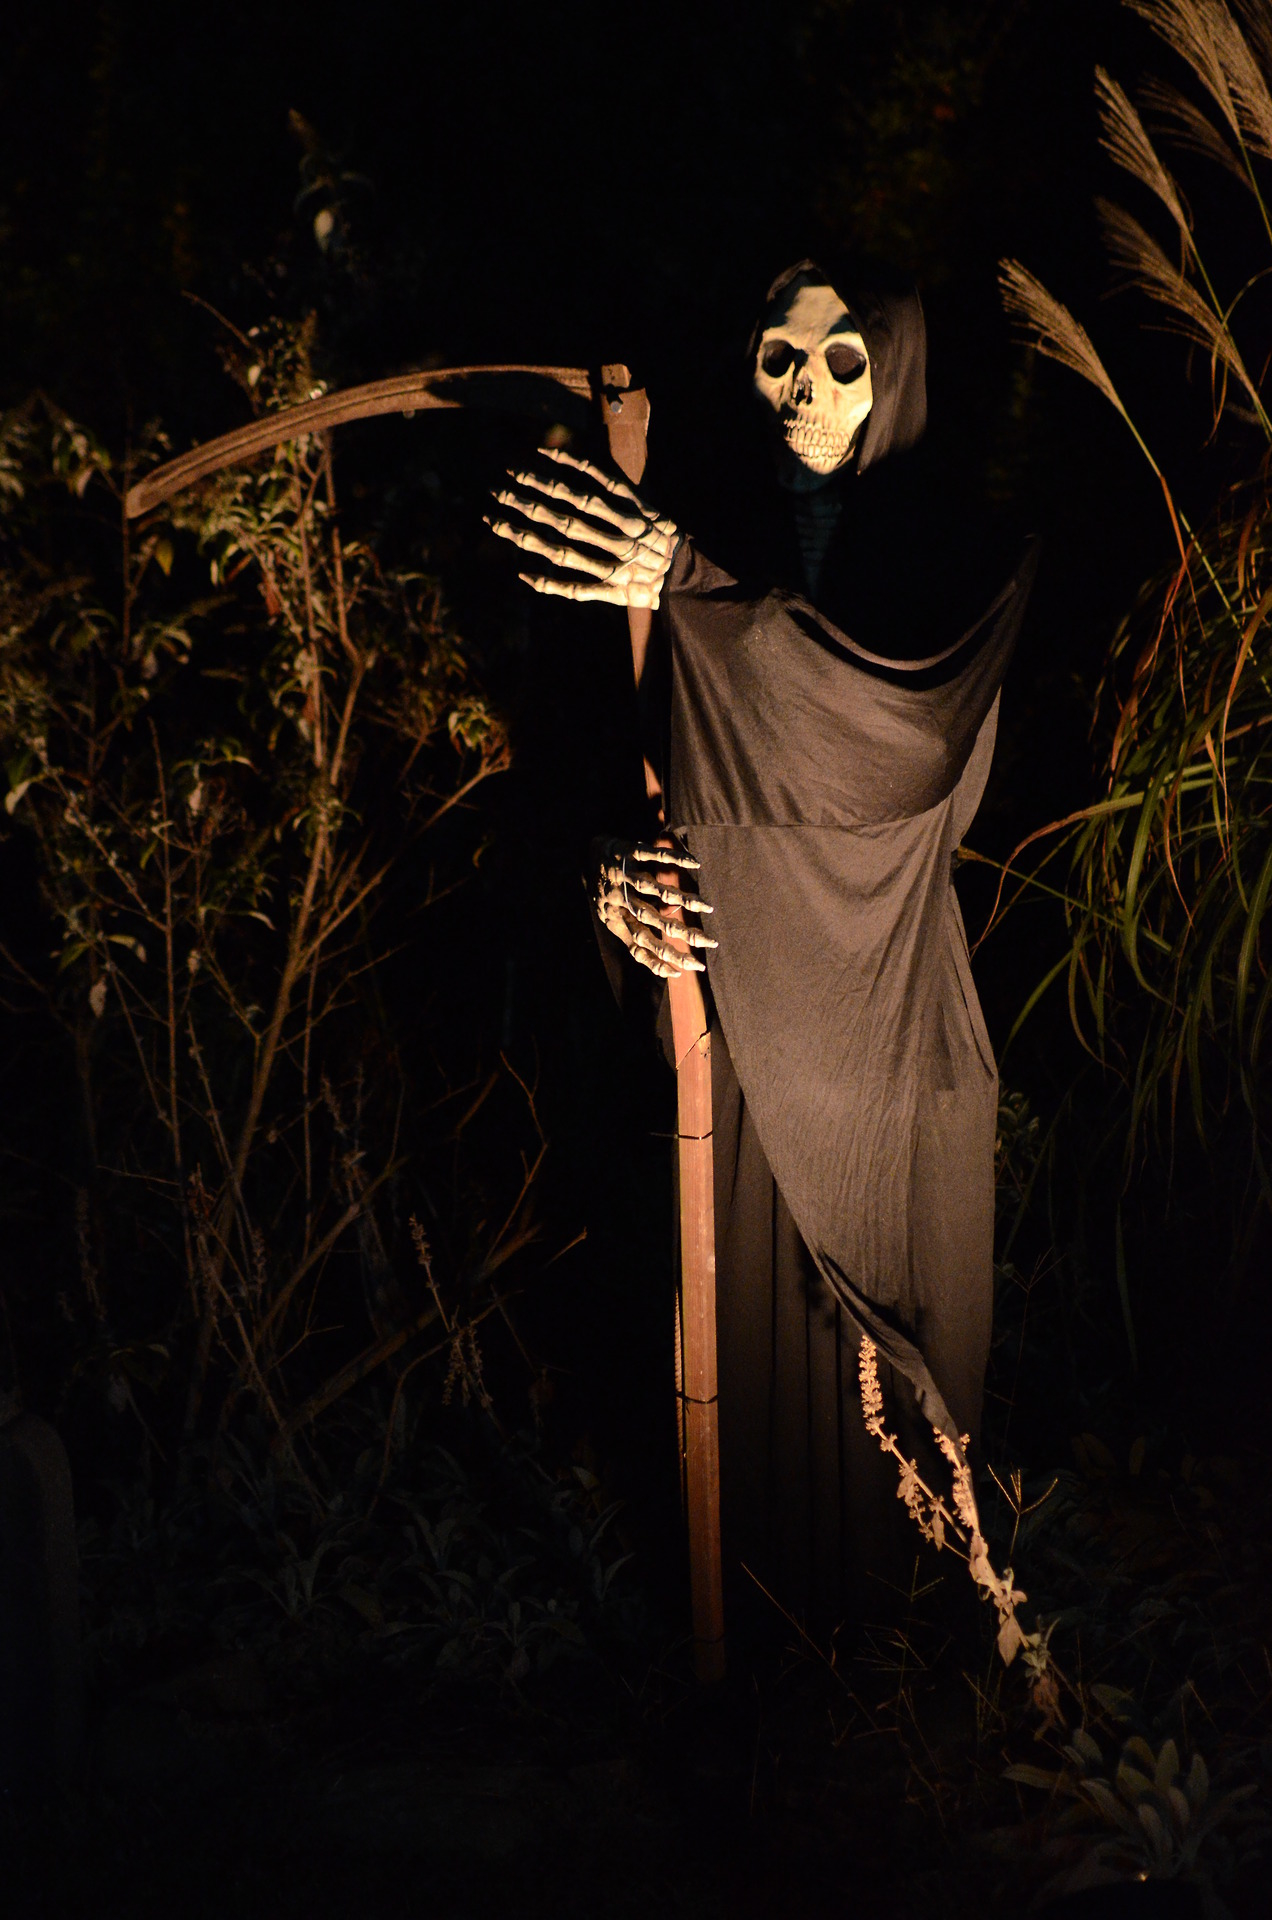 Cute Friends Wallpapers For Facebook Grim Reaper Pictures Photos And Images For Facebook